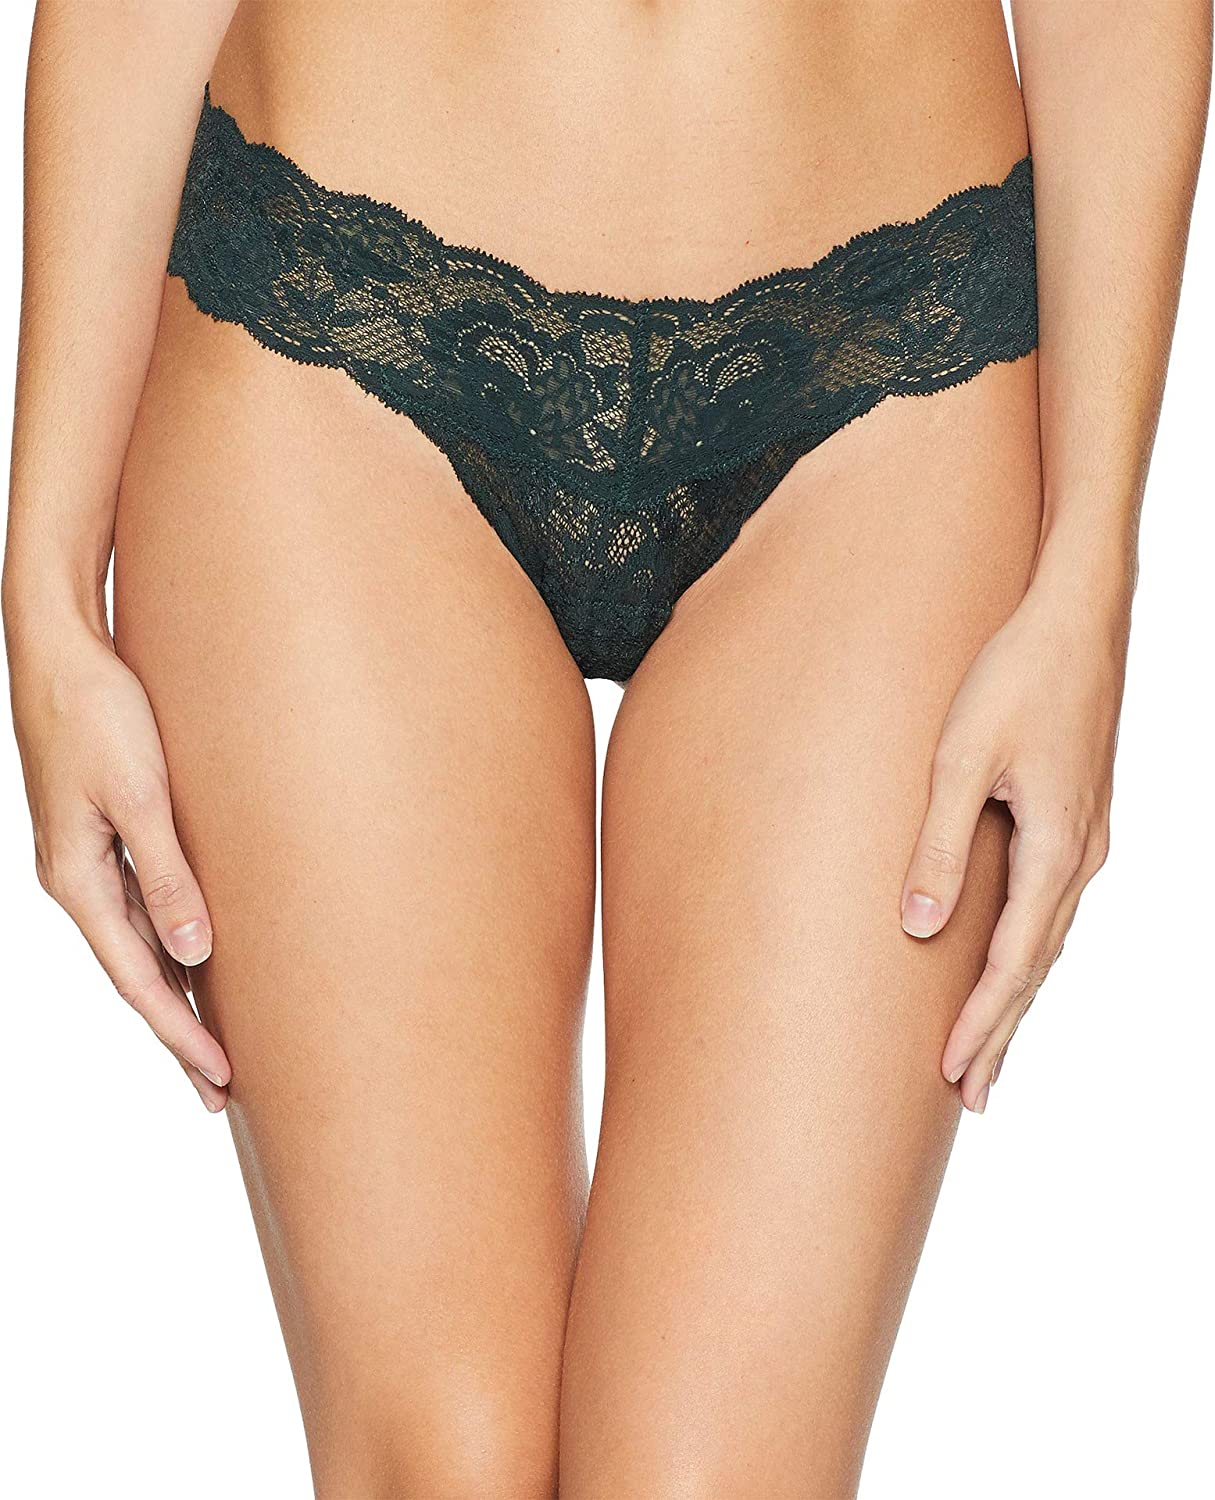 903efbbe0314 Amazon.com: Cosabella Women's Say Never Cutie Lowrider Thong, Darkest  Spruce, One Size Fits All: Clothing